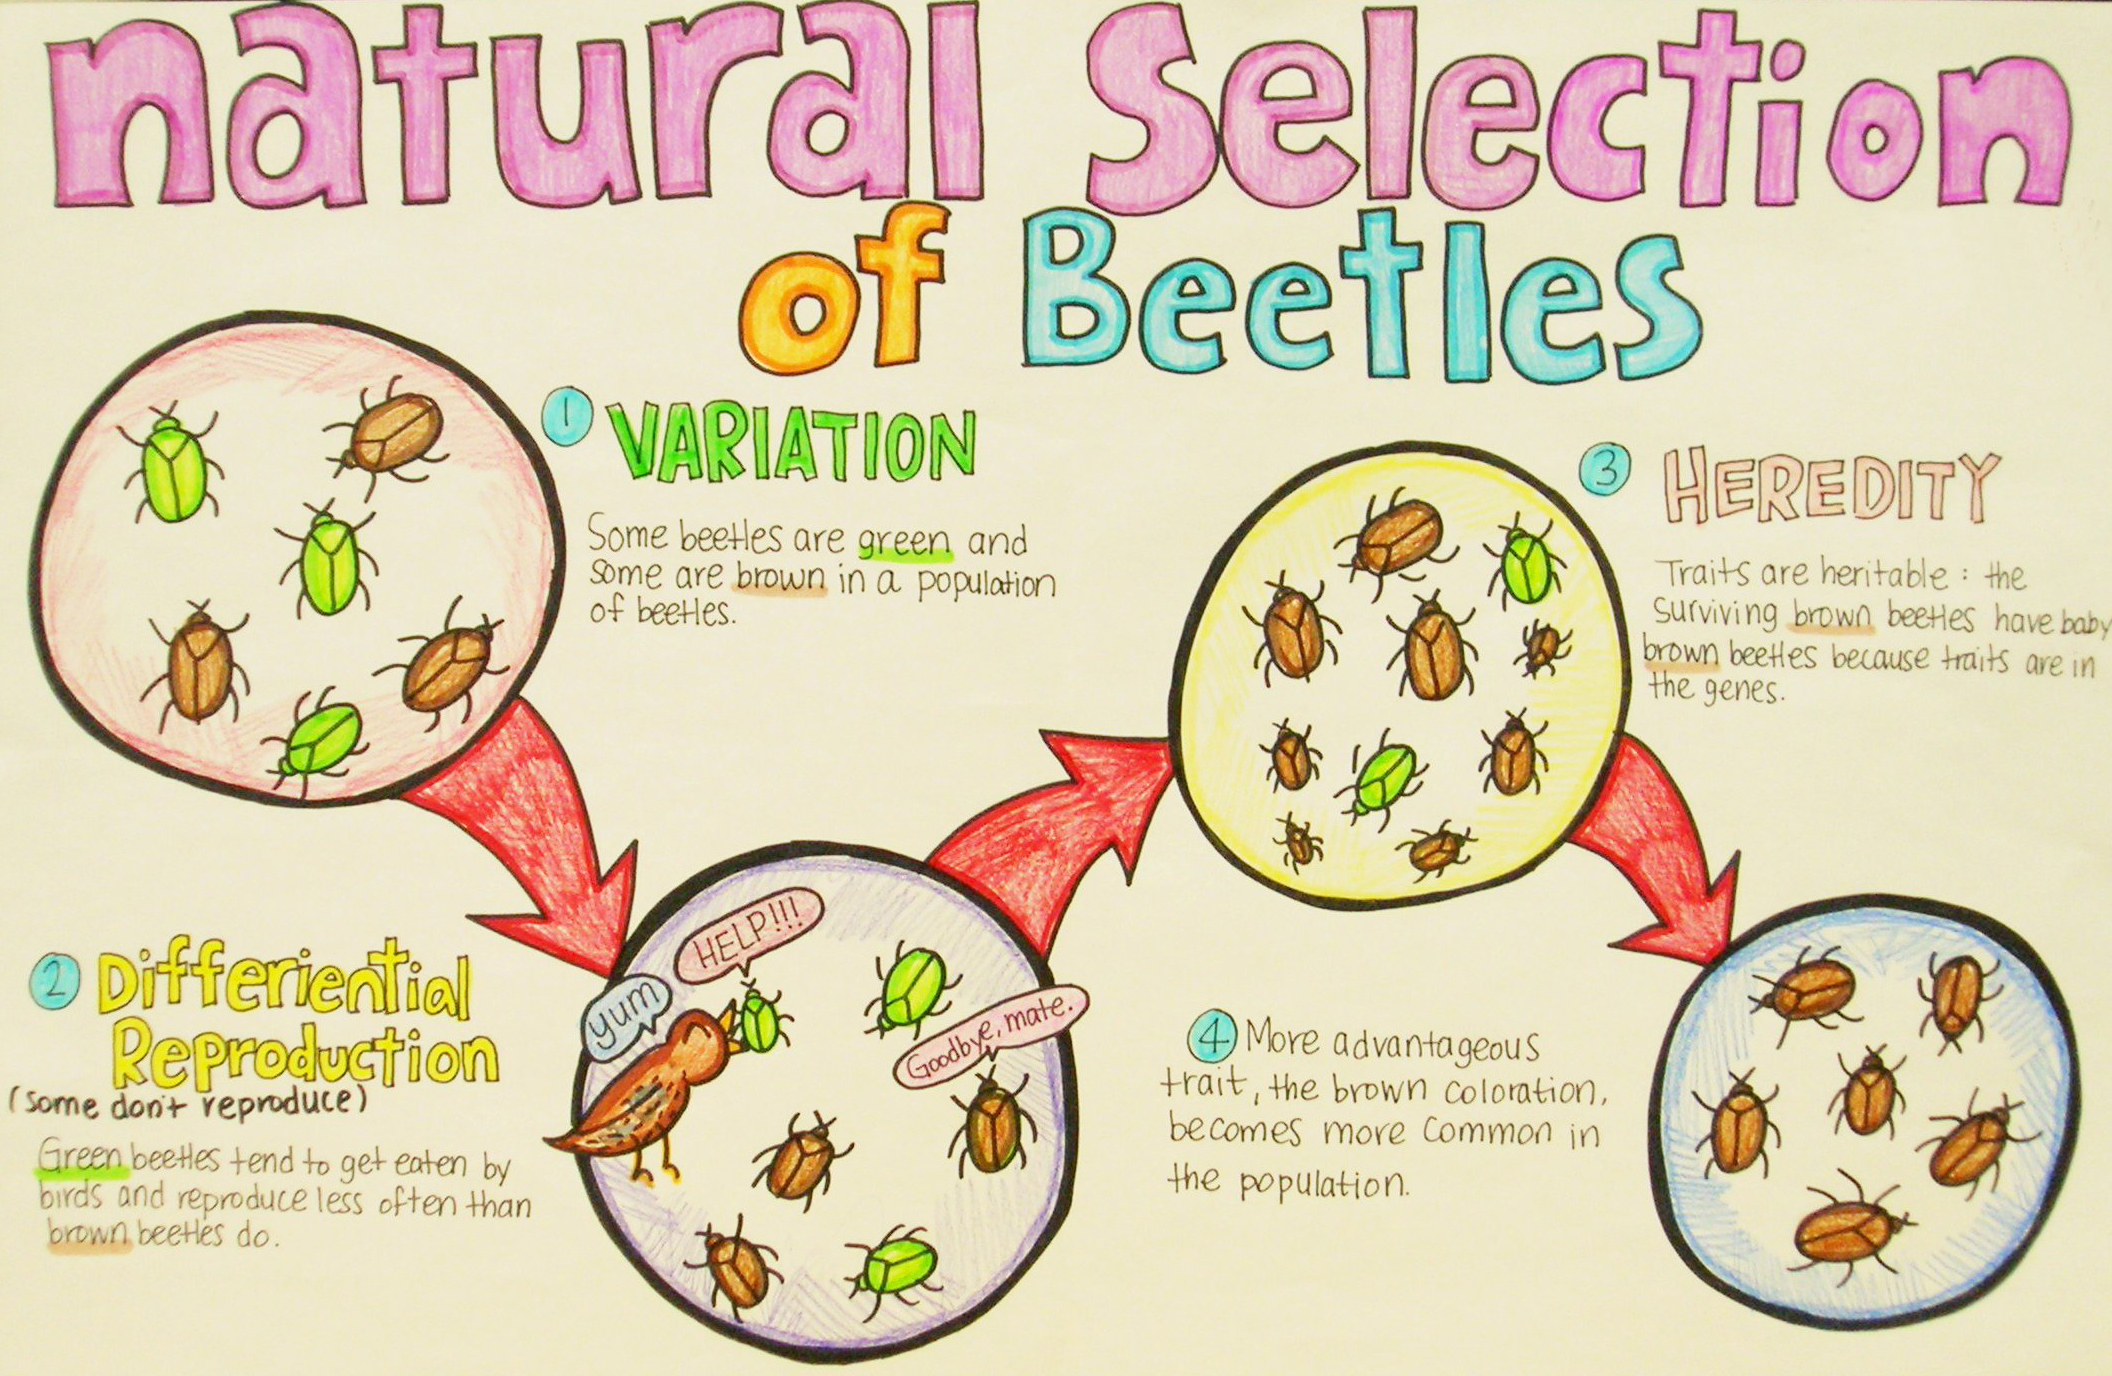 Natural selection example 9th grade science poster. Photo © Enokson / Flickr through a Creative Commons license